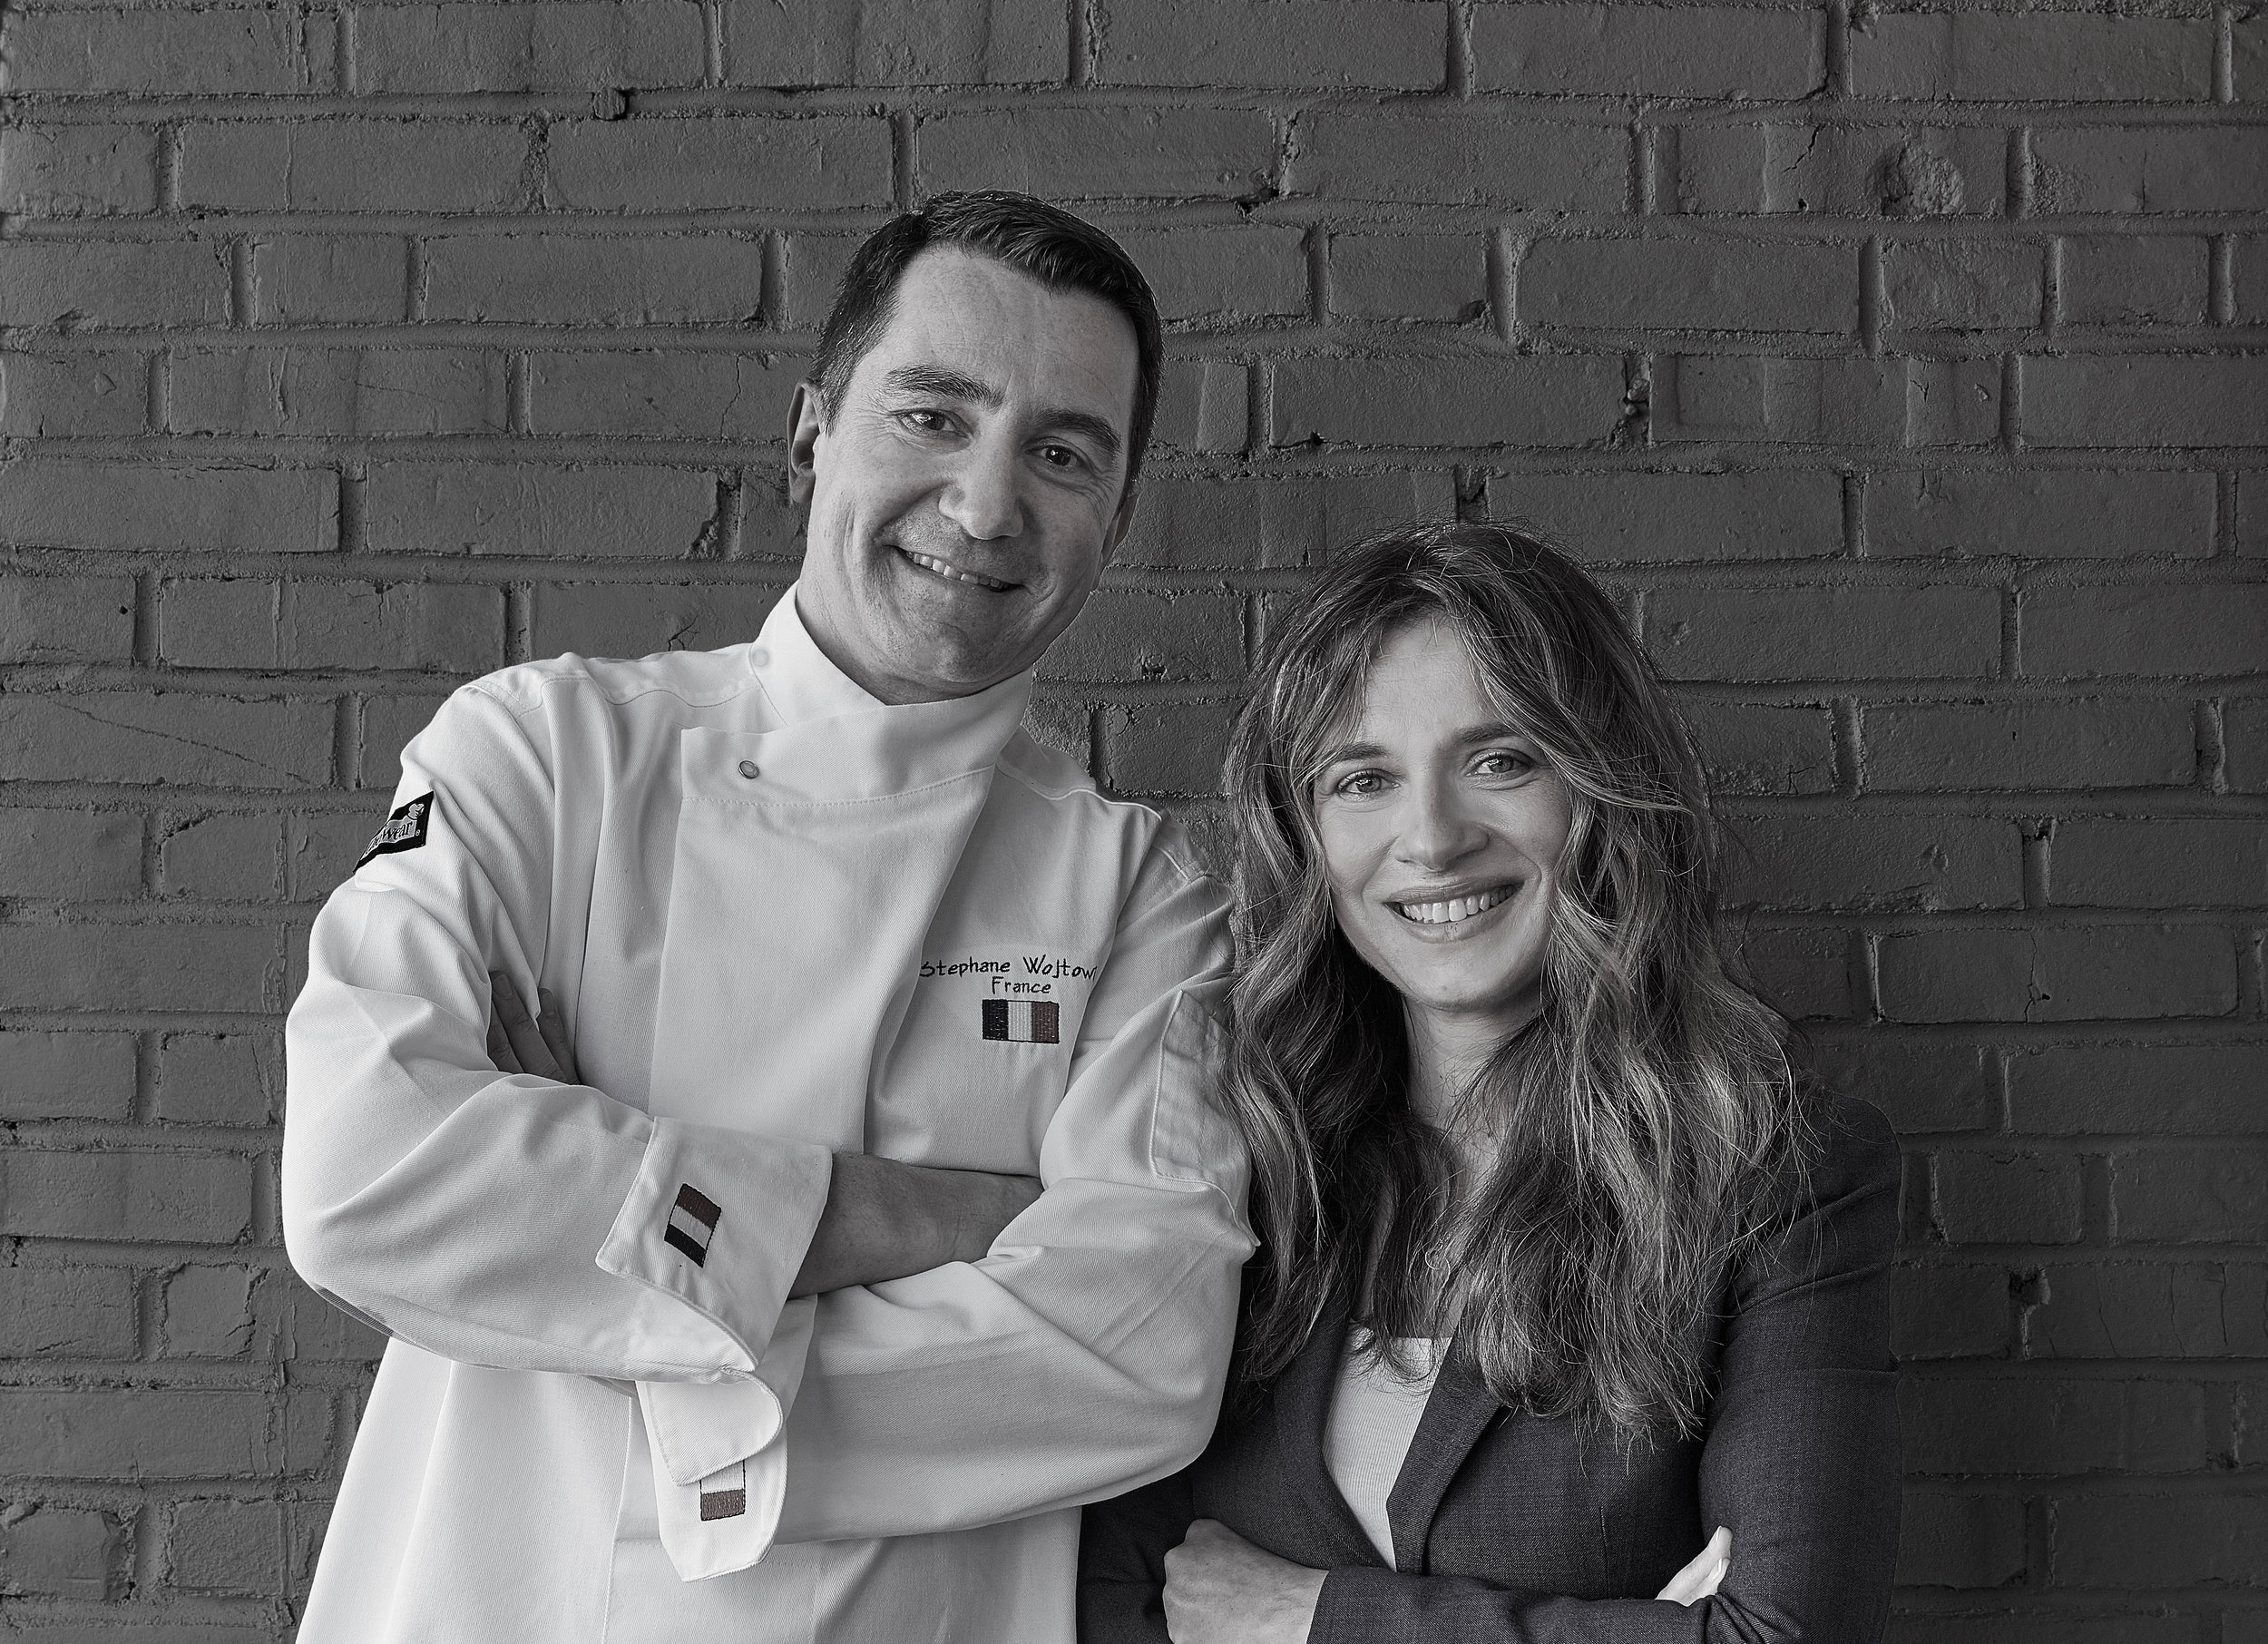 After being born and raised in Lyon, France, the French capital of gastronomy, Stephane's vision of crafting beautiful artisan pastries started at the early age of 16. With two diplomas in hand, one for Baking and another for Pastry Art, Stephane mastered his skills in Lyon before receiving the honor of becoming the head baker at La Cigale in Beirut, Lebanon. After 7 years at one of the most prestigious pastry shops in Lebanon (La Cigale), Stephane decided it was time to leave Beirut and make the move to Philadelphia with his family where he began working as the head baker for George Perrier and his signature restaurants. Seeing an opportunity to expand the culinary scene of Philadelphia in 2008, Stephane founded and opened, Au Fournil Inc., his own French Artisanal bakery. A few years later in 2012, Au Fournil Inc. proved to be a mainstay supplying the top restaurants, coffee shops, and hotels in the Greater Philadelphia Area. Needing more hands on the team for the rapidly growing business, Stephane's wife, Nayla, decided to join the team as a full time member.